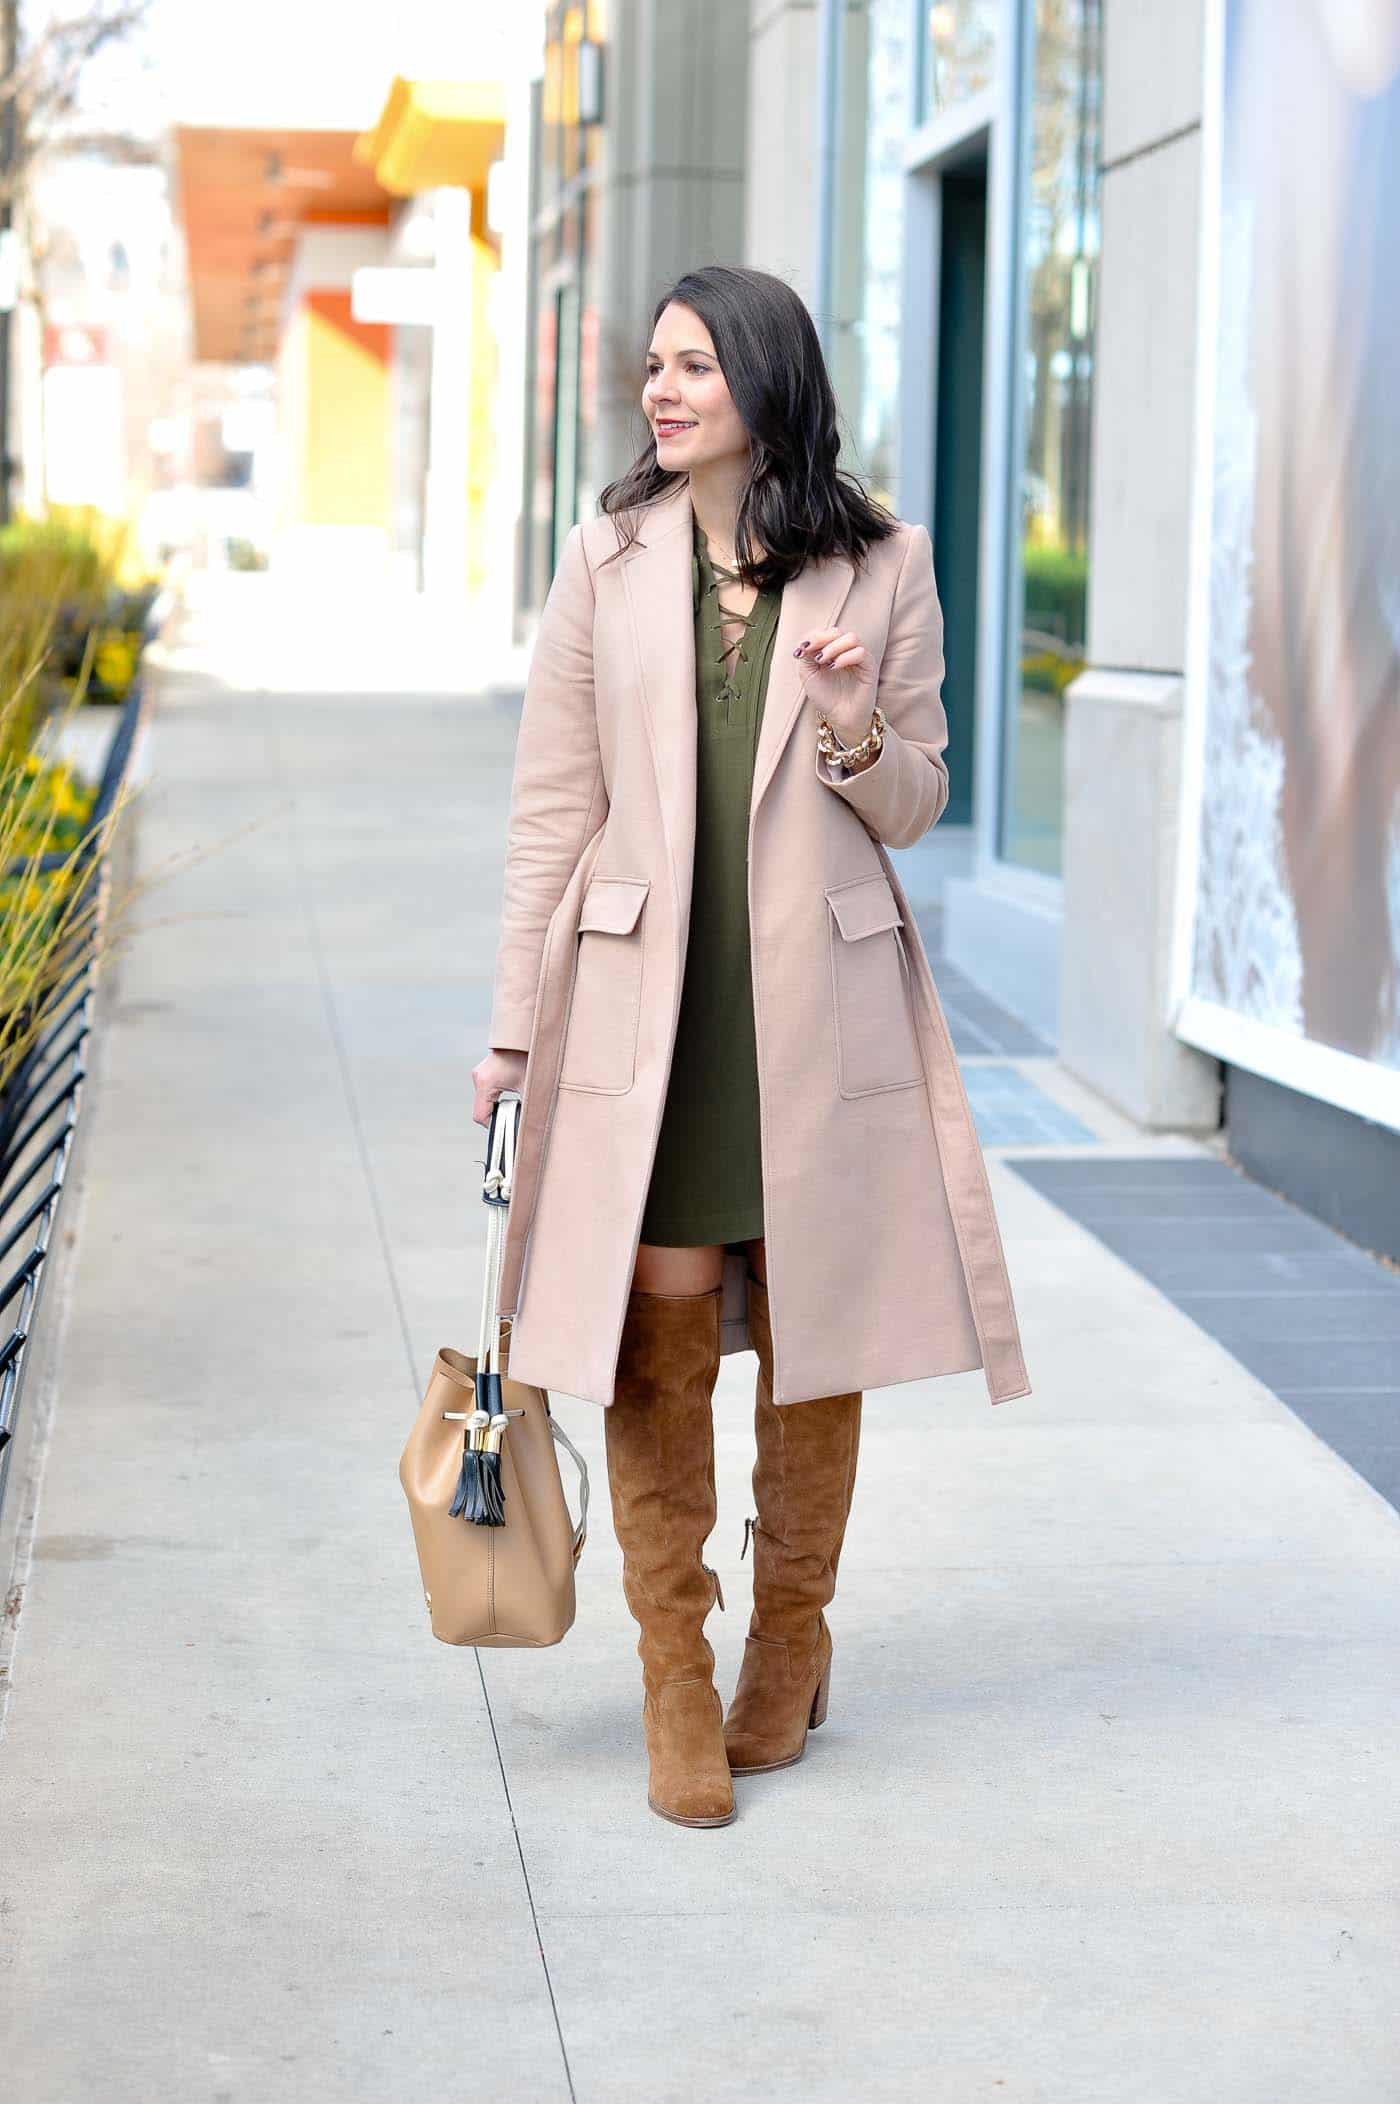 Spring Outfit Ideas With Boots - My Style Vita